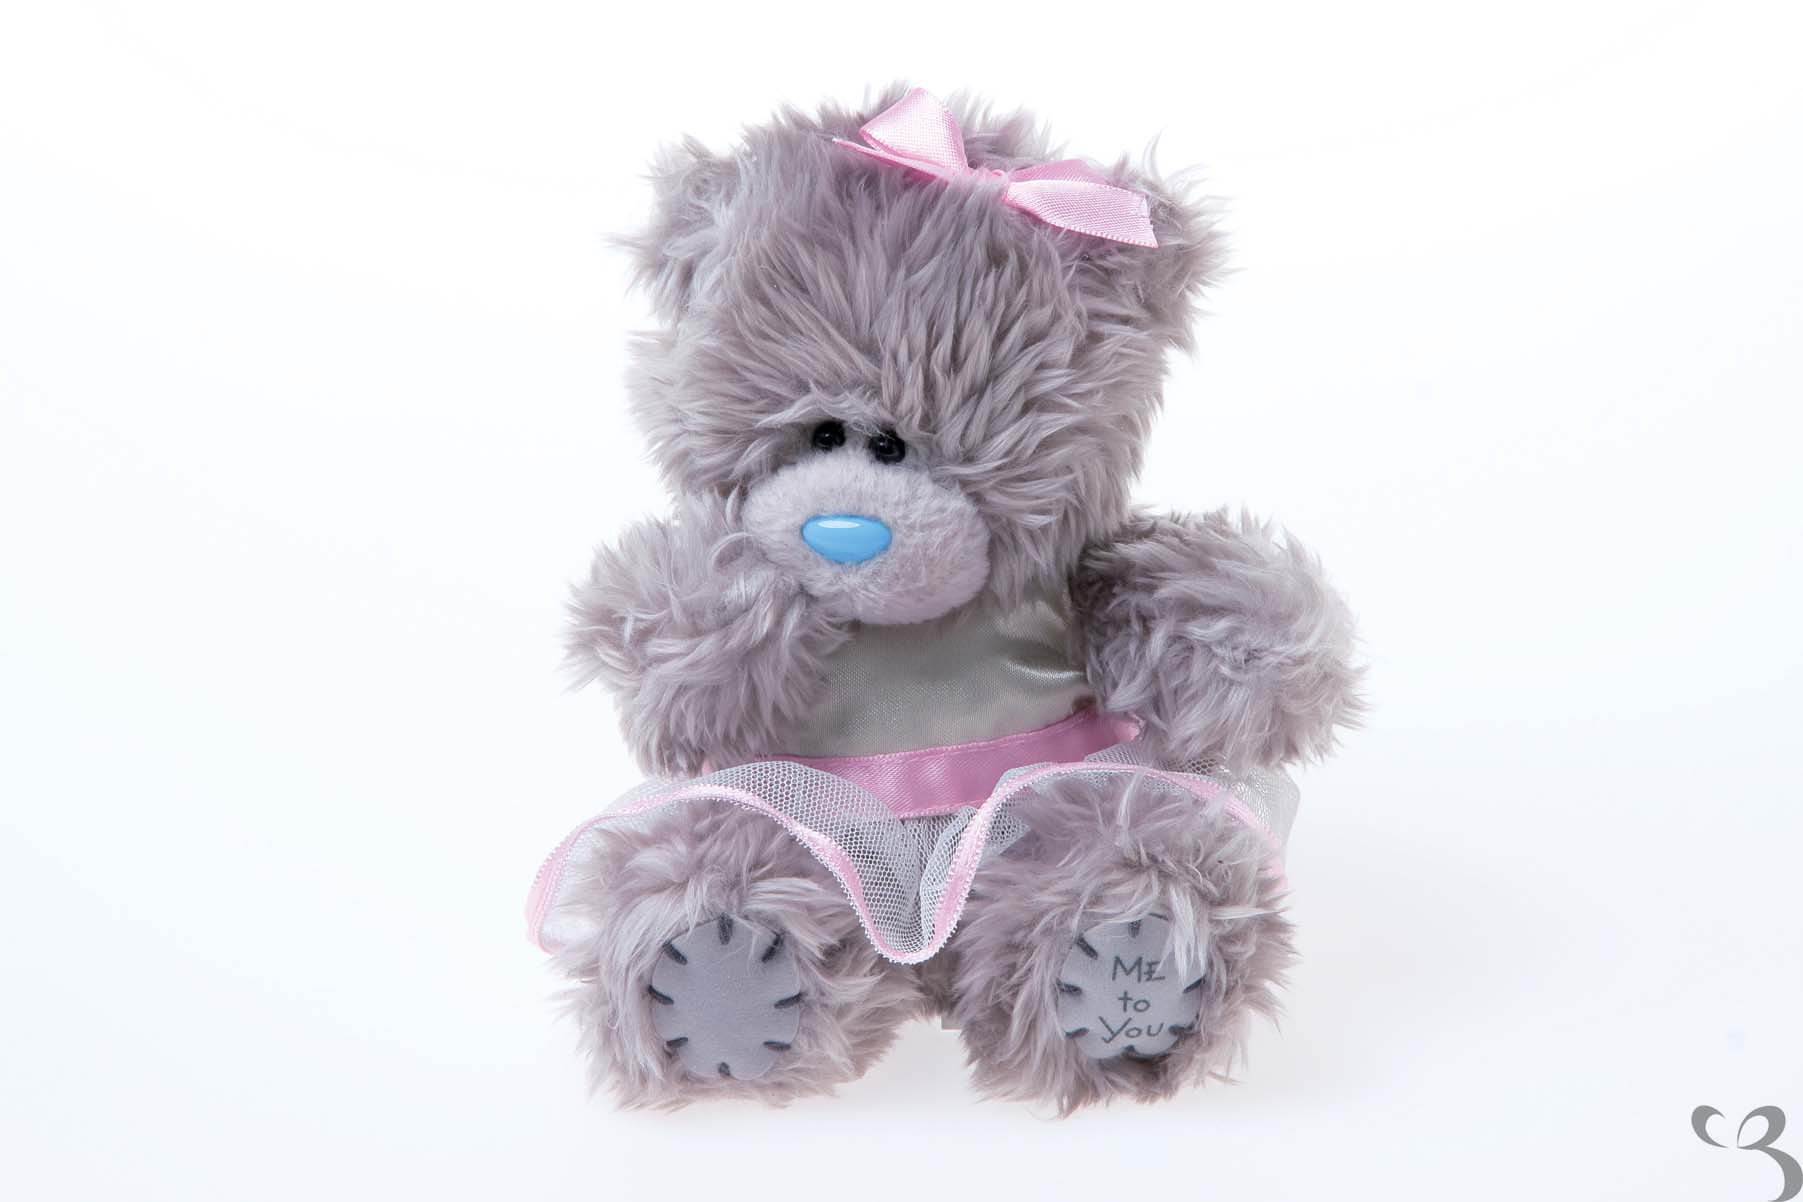 "Me To You Wedding Gifts: 5"" Plush Special Bridesmaid Bear"